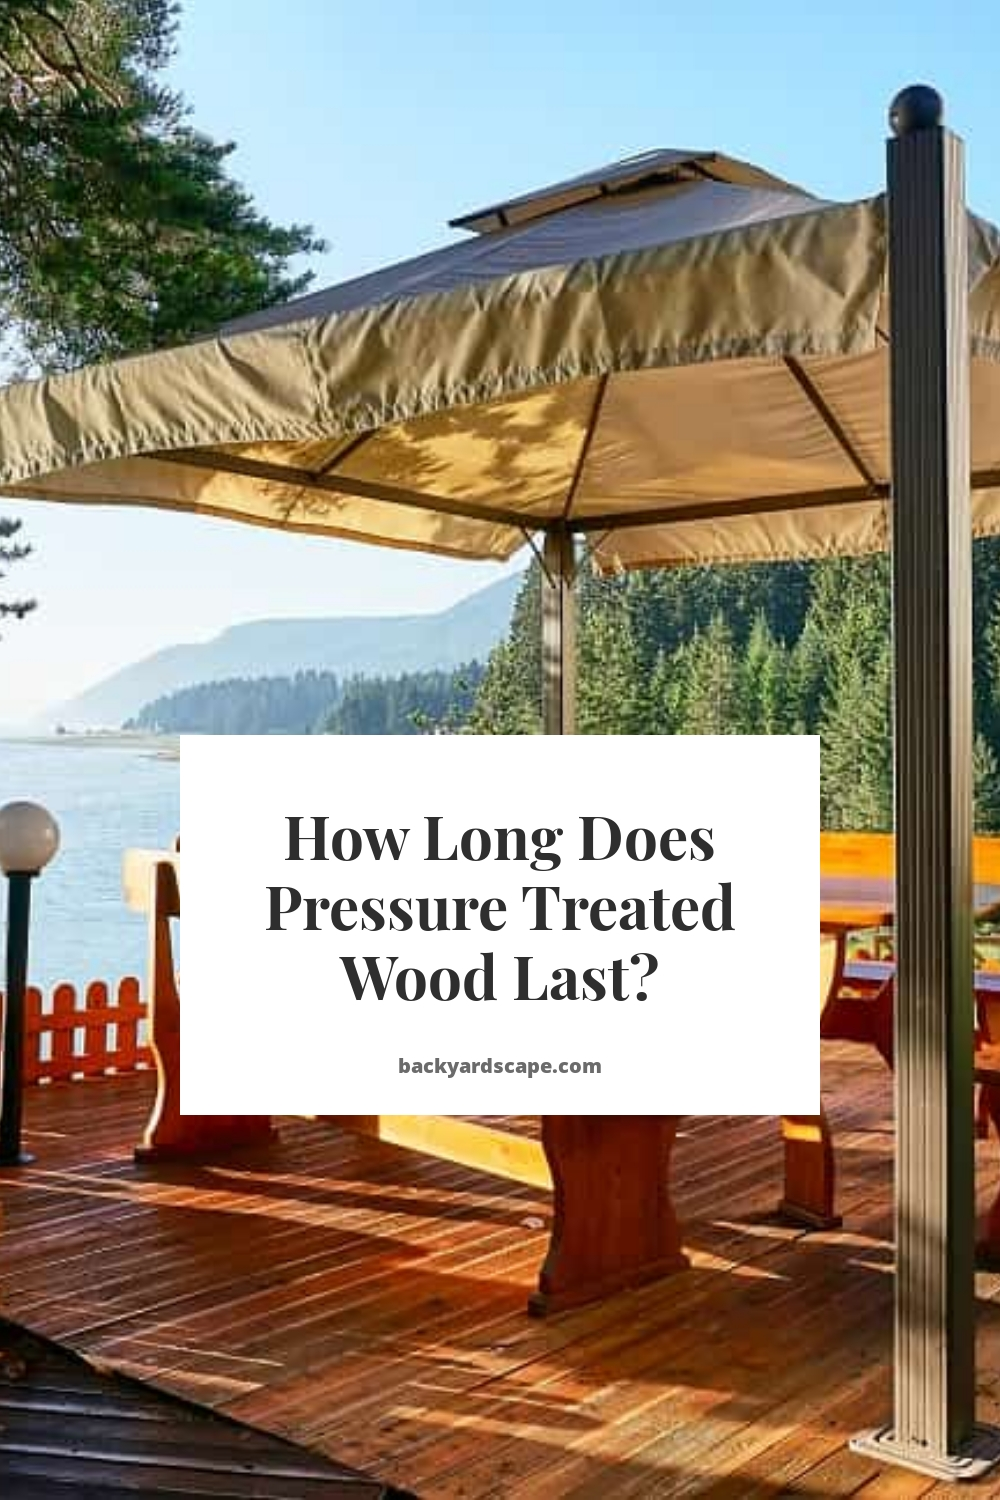 How Long Does Pressure Treated Wood Last?